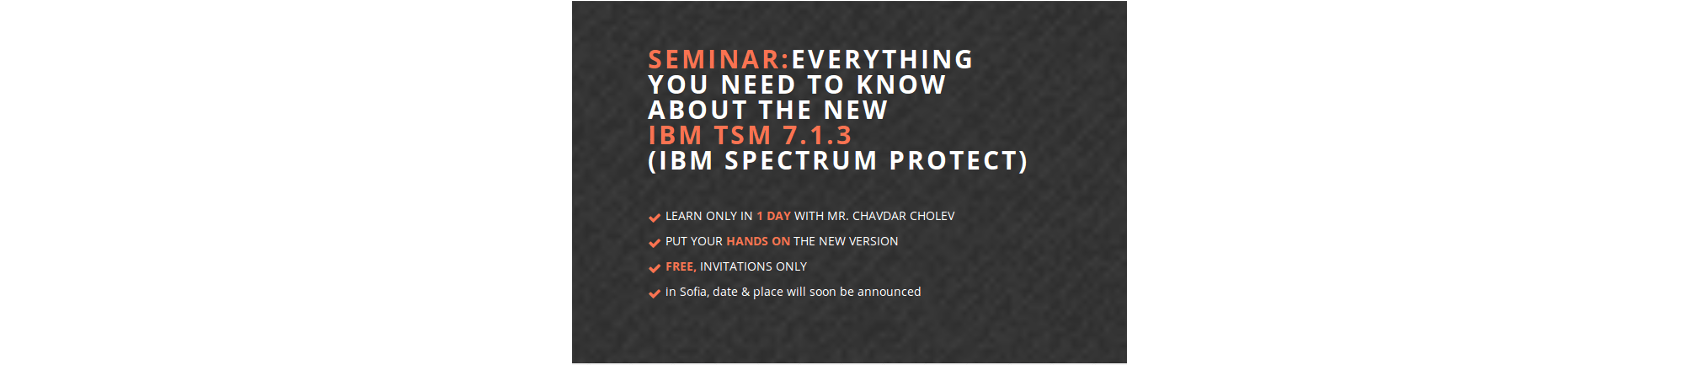 IBM TSM 7.1.3 (IBM Spectrum Protect) is here! Are you ready?